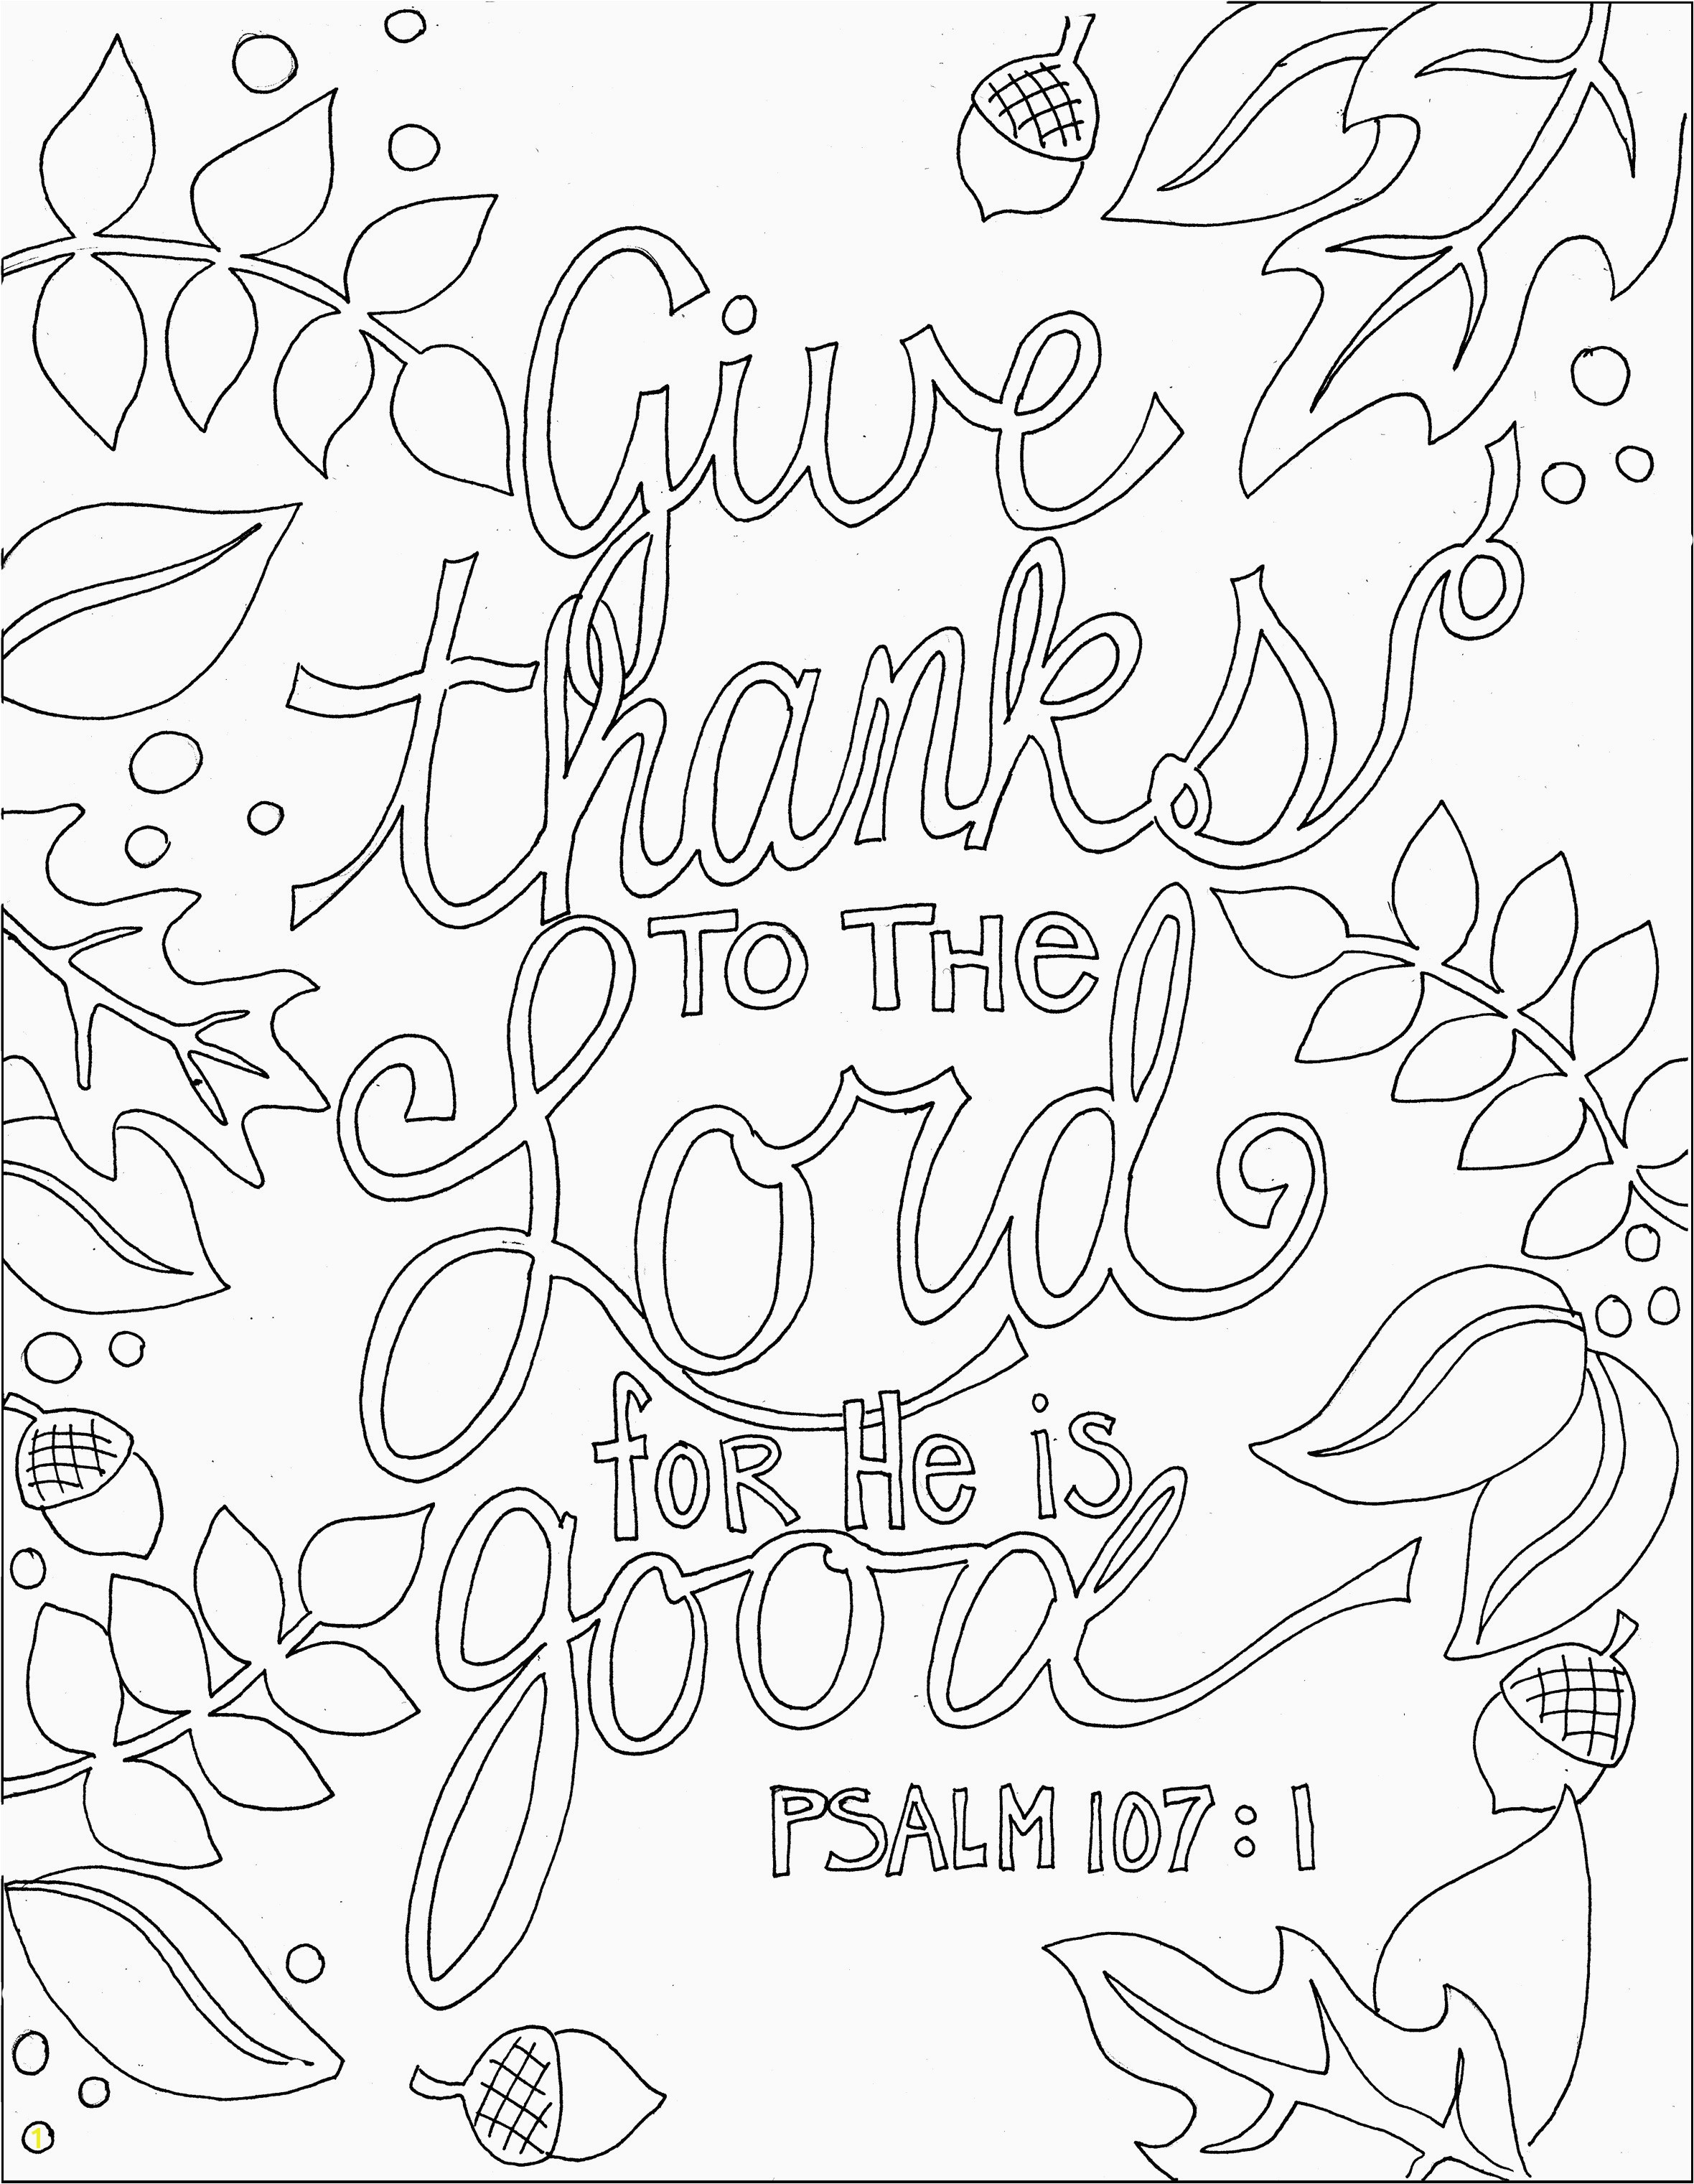 Bible Verse Coloring Pages New Free Printable Bible Coloring Pages with Scriptures Elegant Best Od